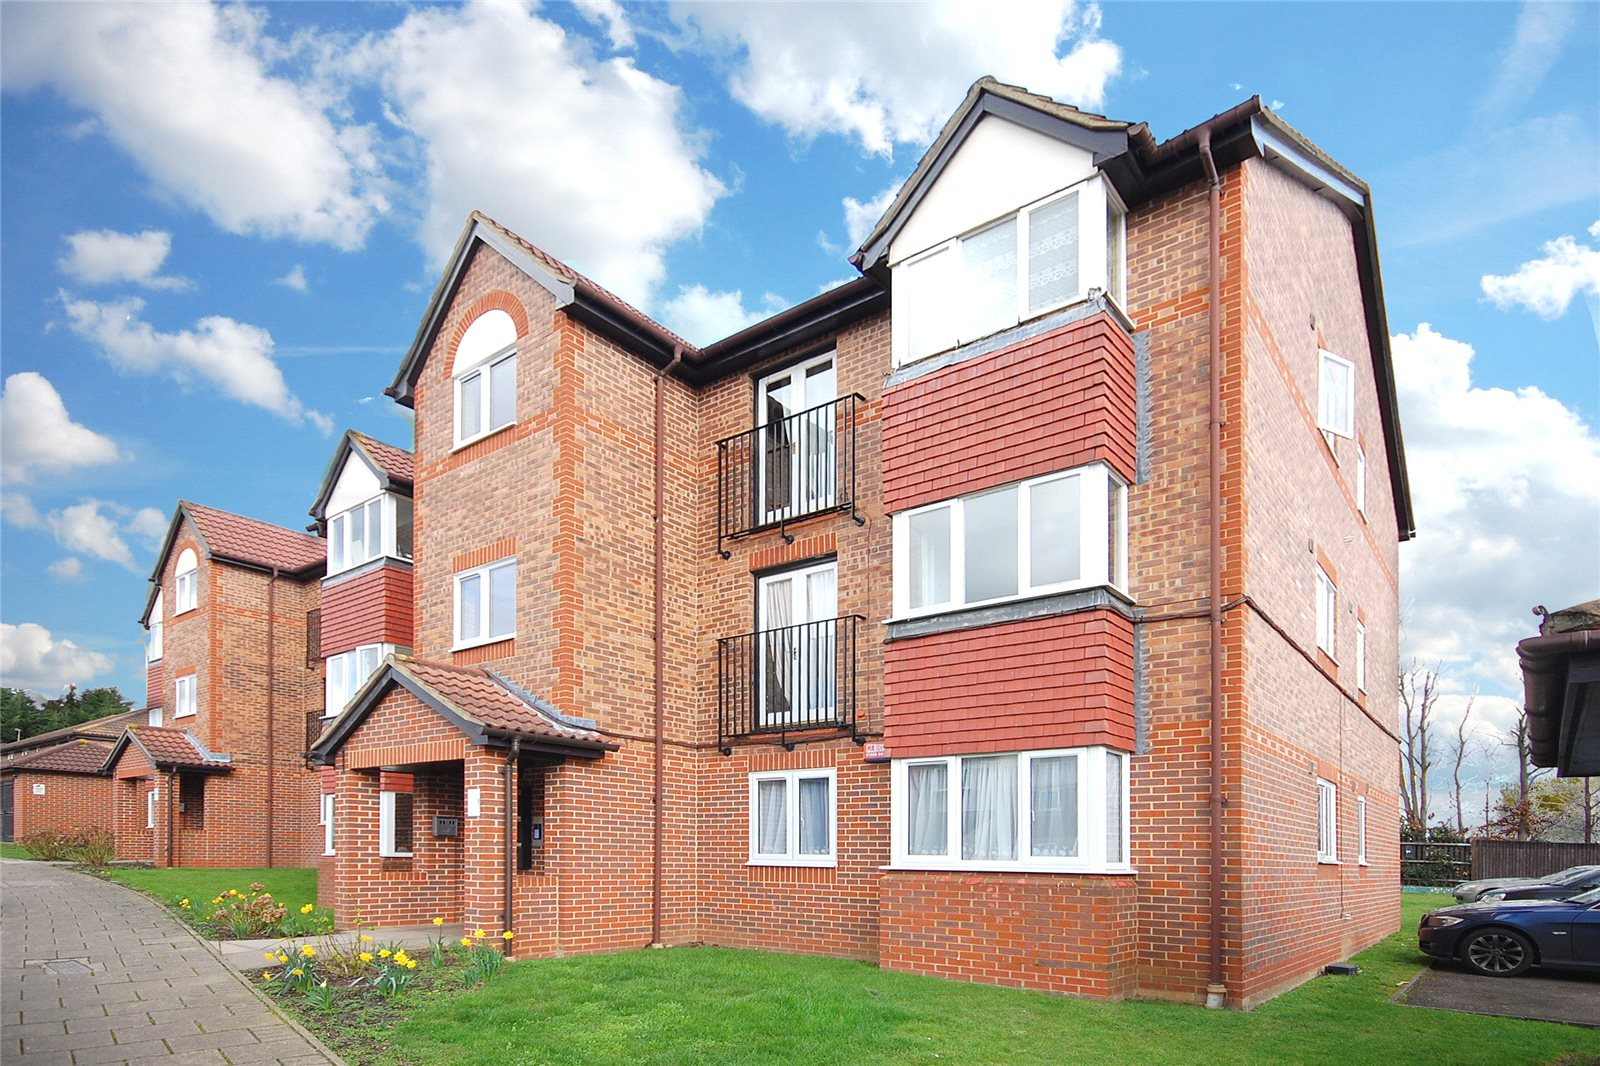 2 Bedrooms Flat for sale in Campbell Gordon Way London NW2